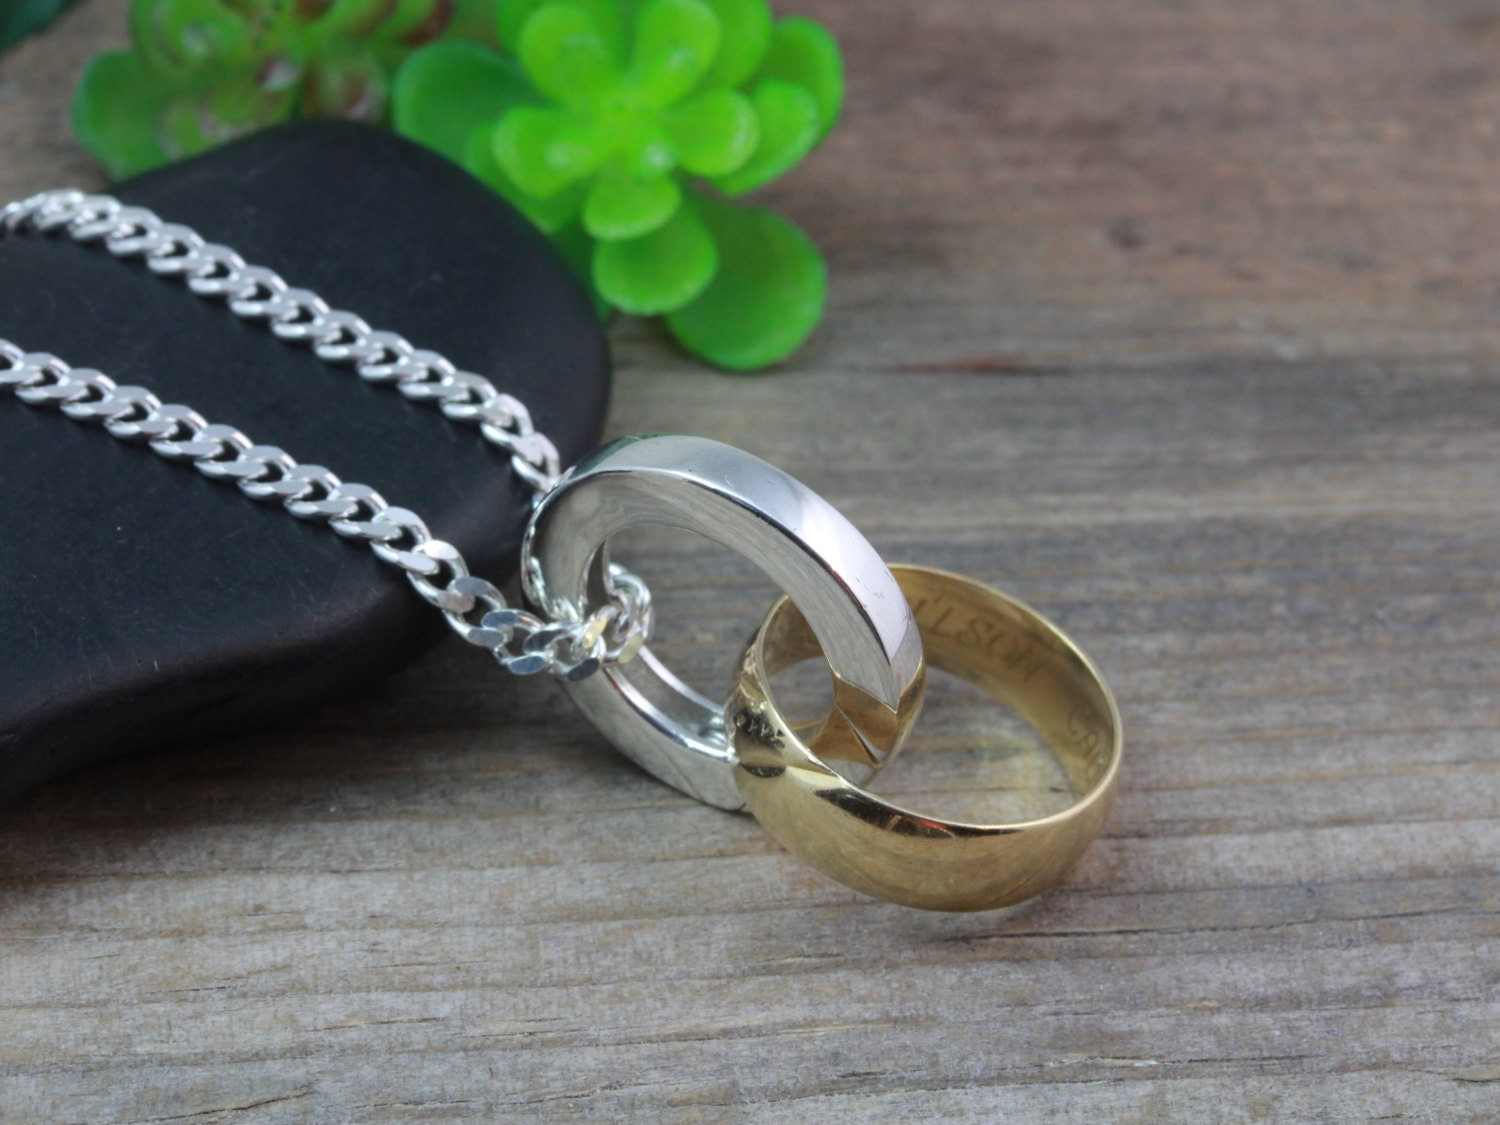 Necklace to put wear when taking off wedding ring